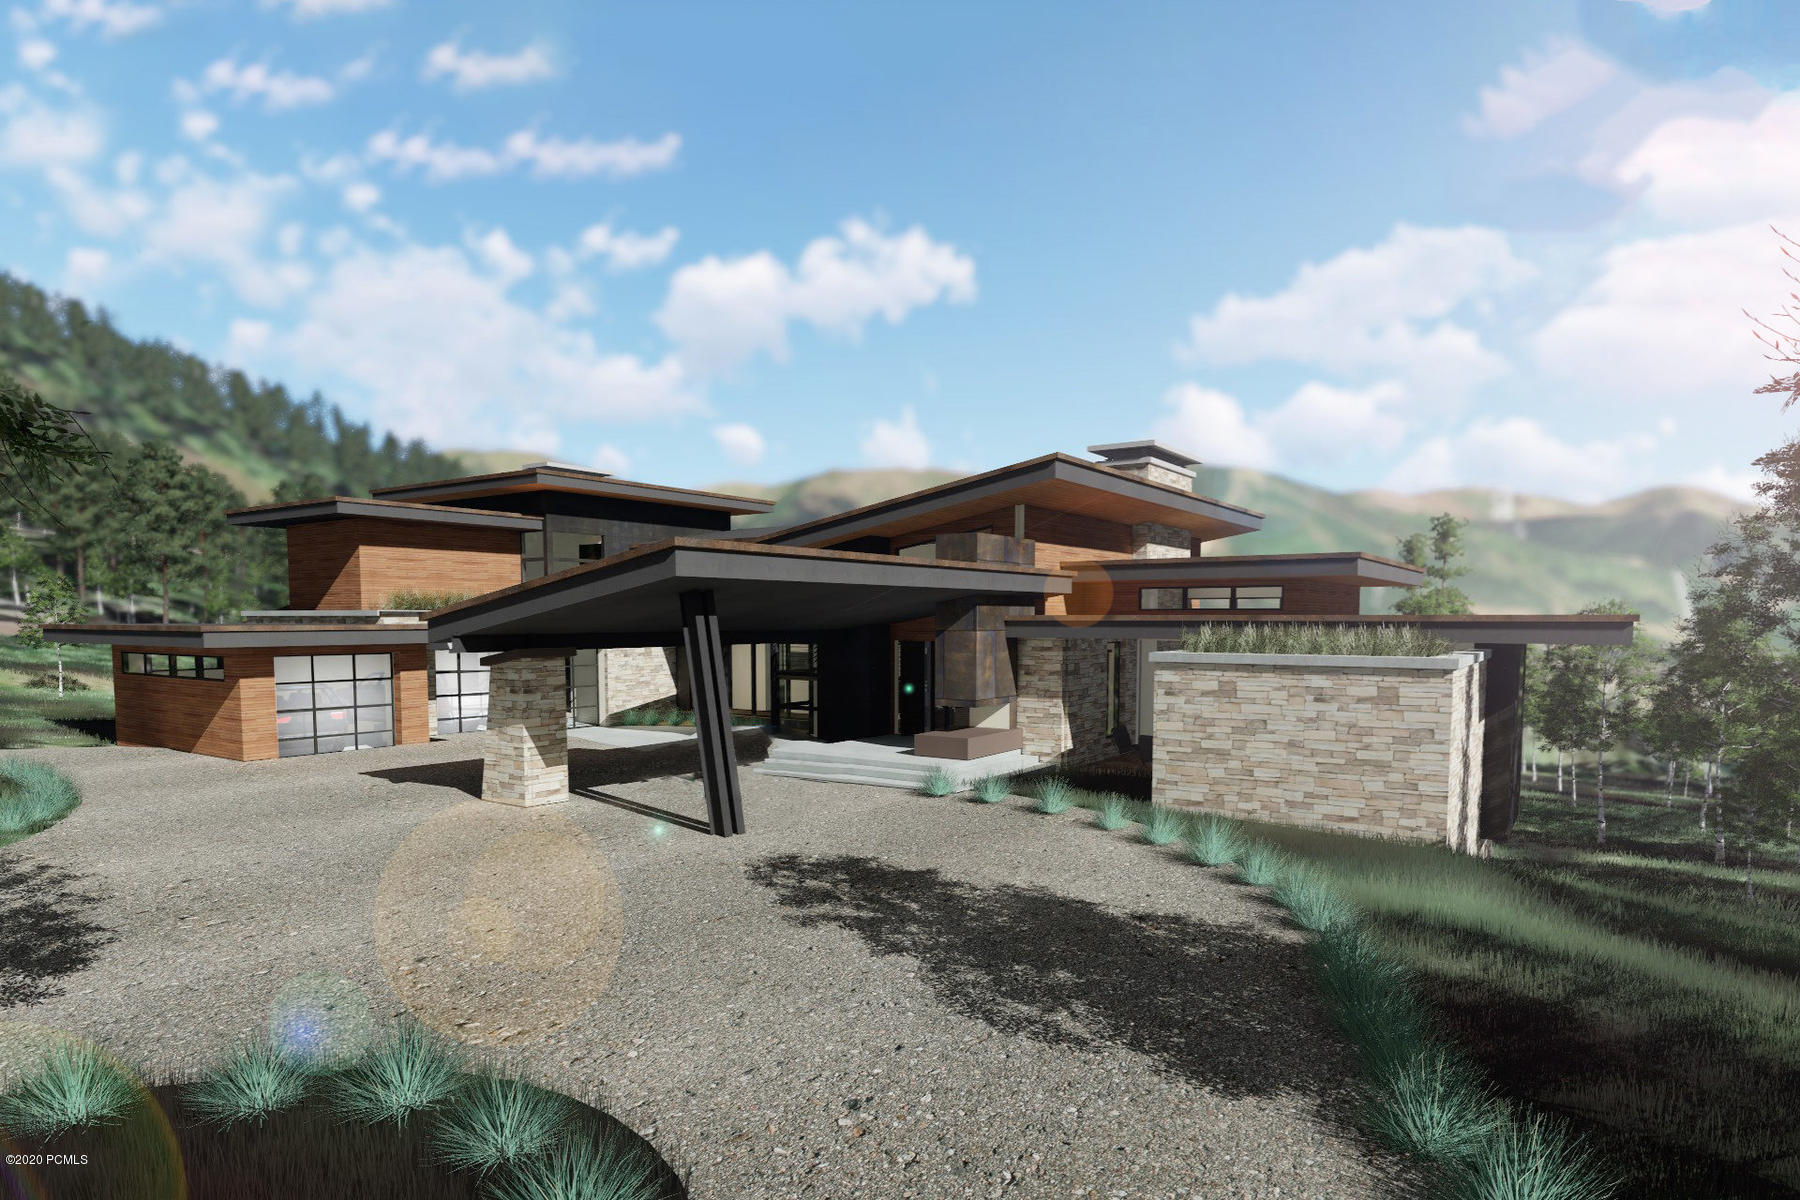 251 White Pine Canyon Road, Park City, Utah 84060, 5 Bedrooms Bedrooms, ,9 BathroomsBathrooms,Single Family,For Sale,White Pine Canyon,20190109112430415765000000